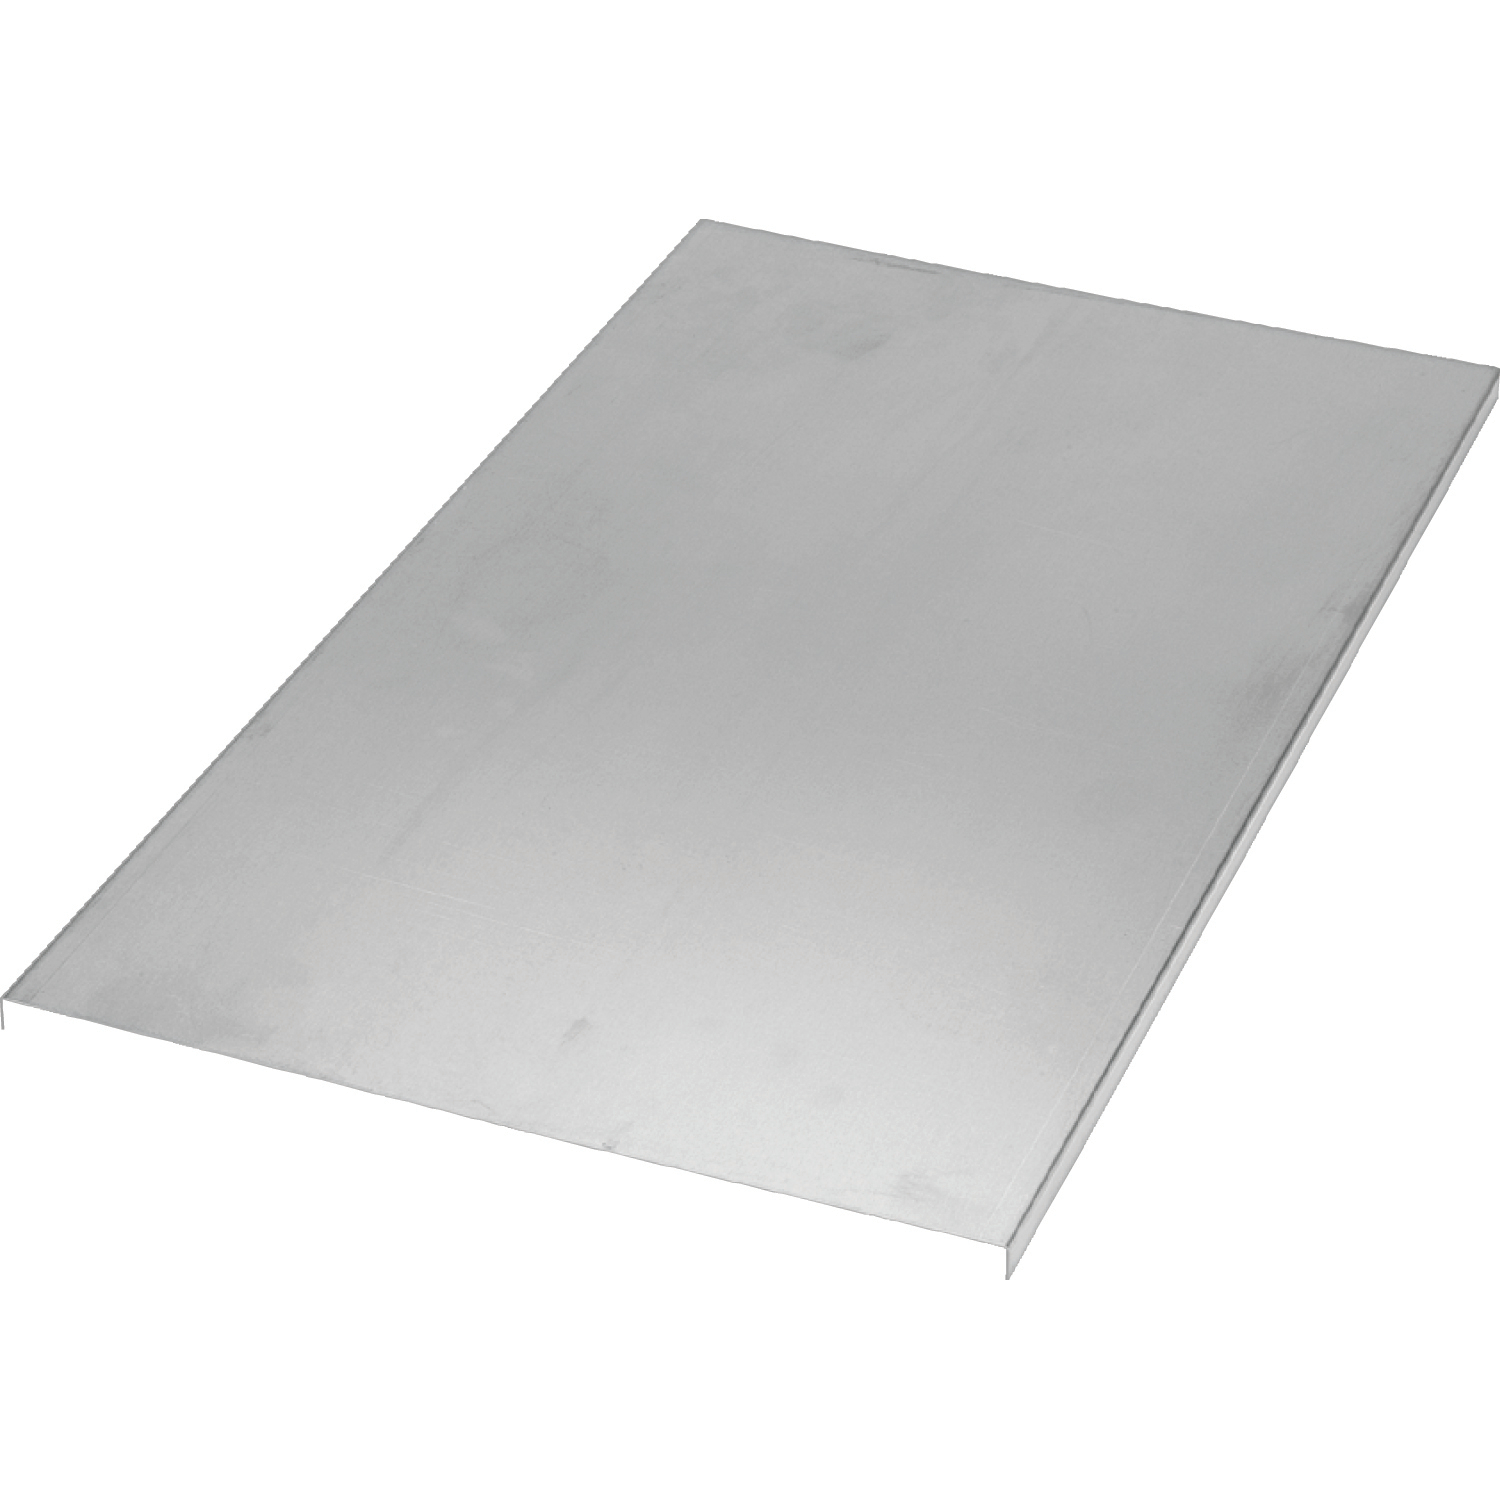 Tray Covers | STANION WHOLESALE ELECTRIC